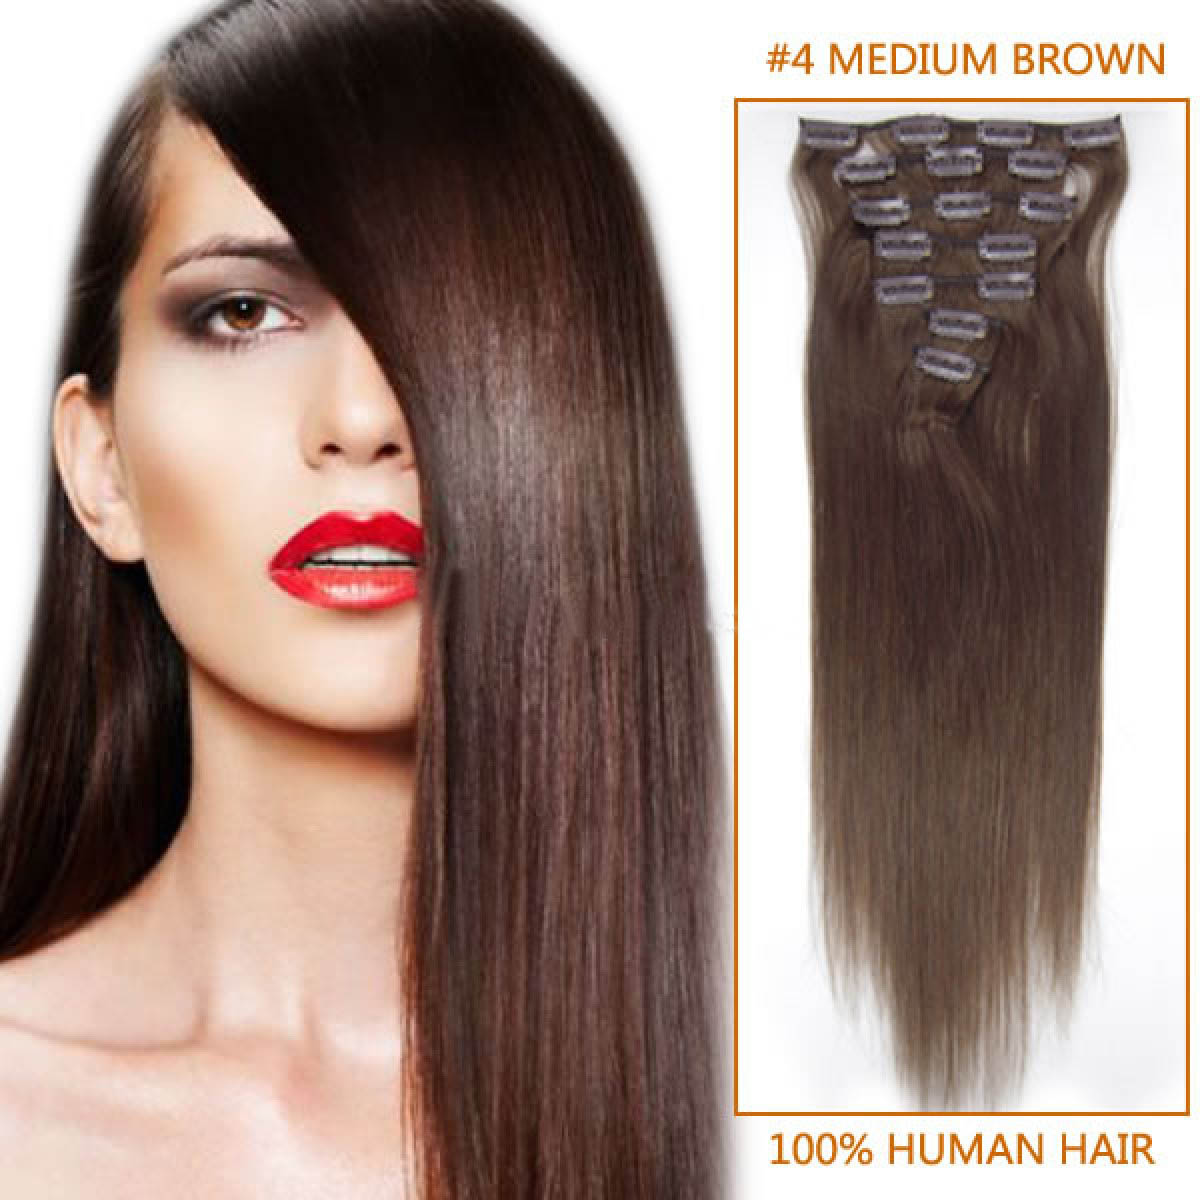 22 Inch 4 Medium Brown Clip In Remy Human Hair Extensions 7pcs